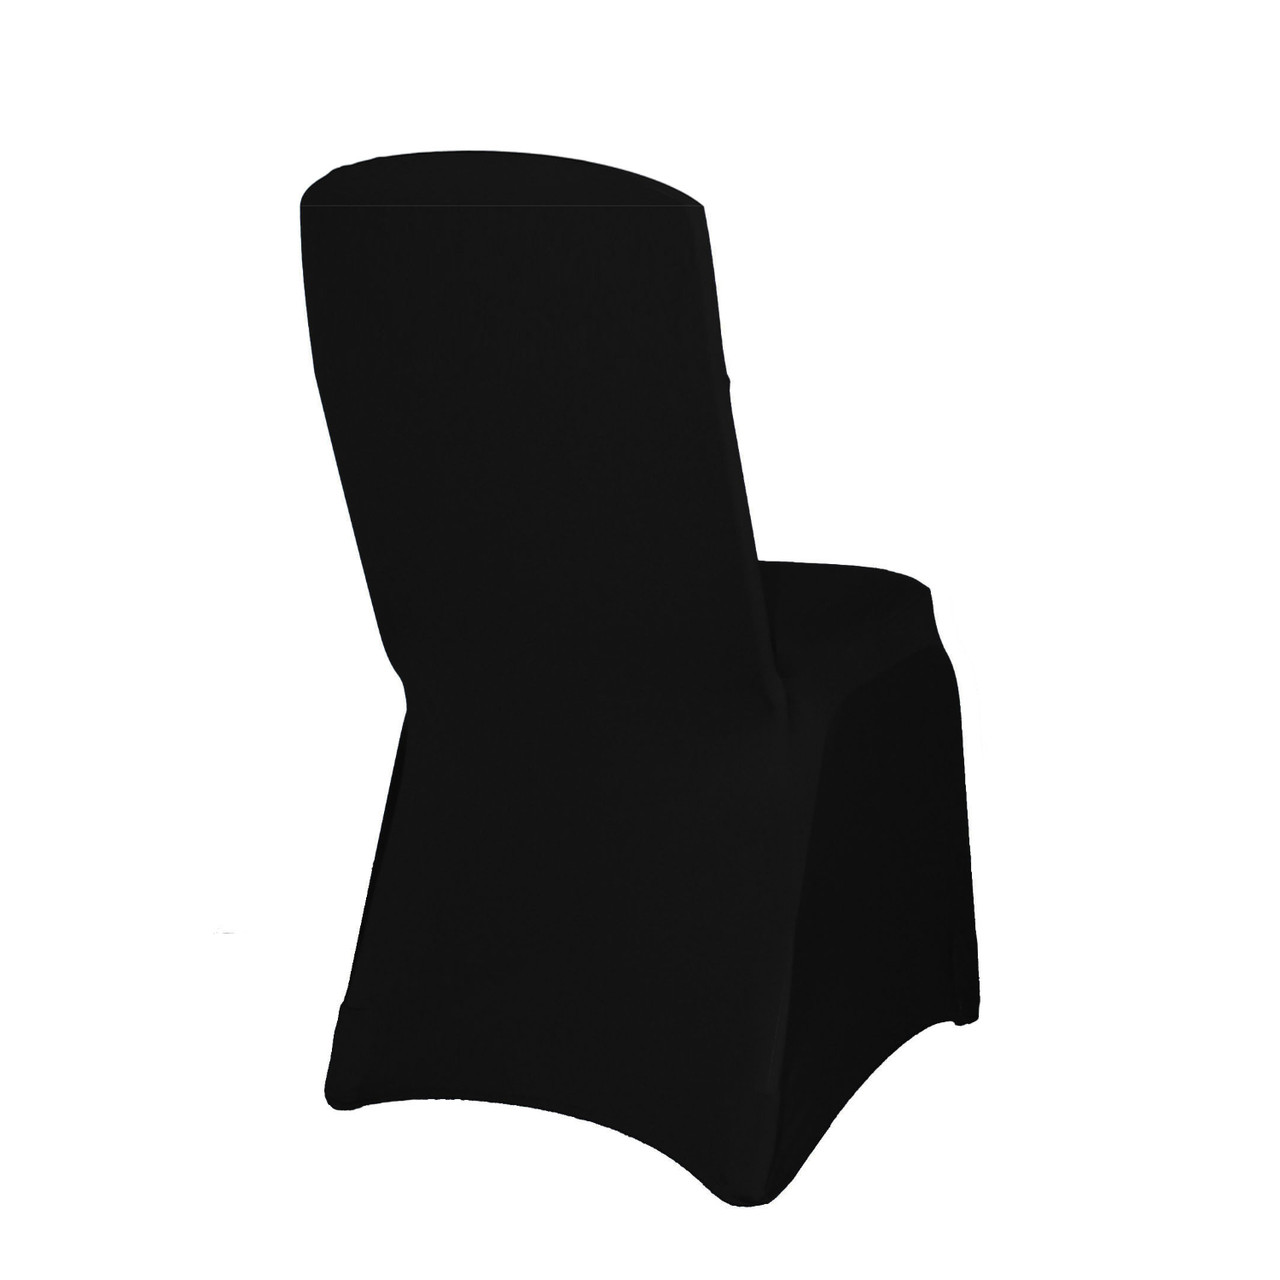 Remarkable Square Top Stretch Spandex Banquet Chair Cover Black Unemploymentrelief Wooden Chair Designs For Living Room Unemploymentrelieforg